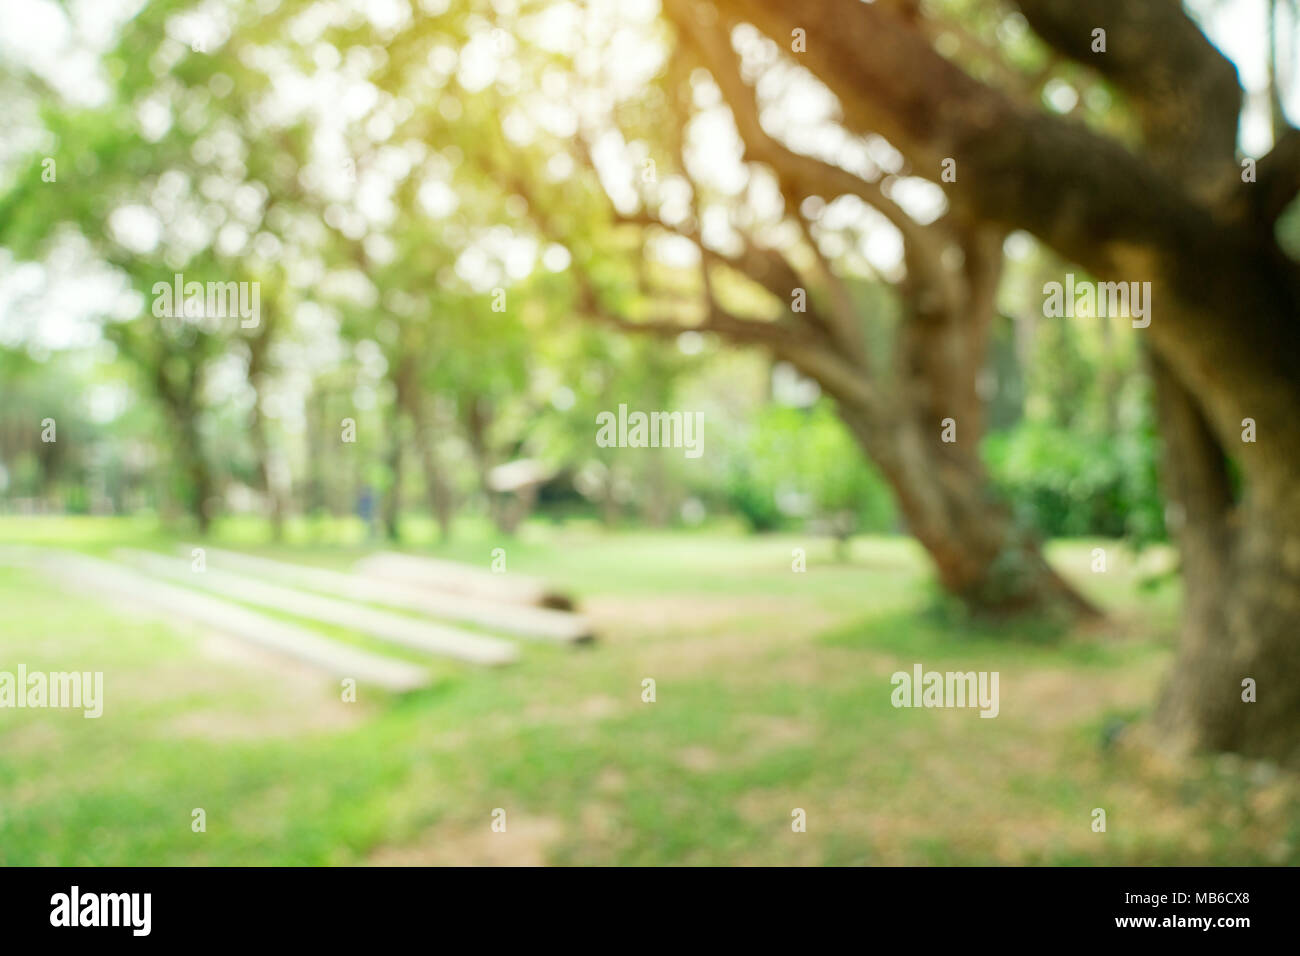 Sunlight Trees Background Blur Stock Photos Sunlight Trees